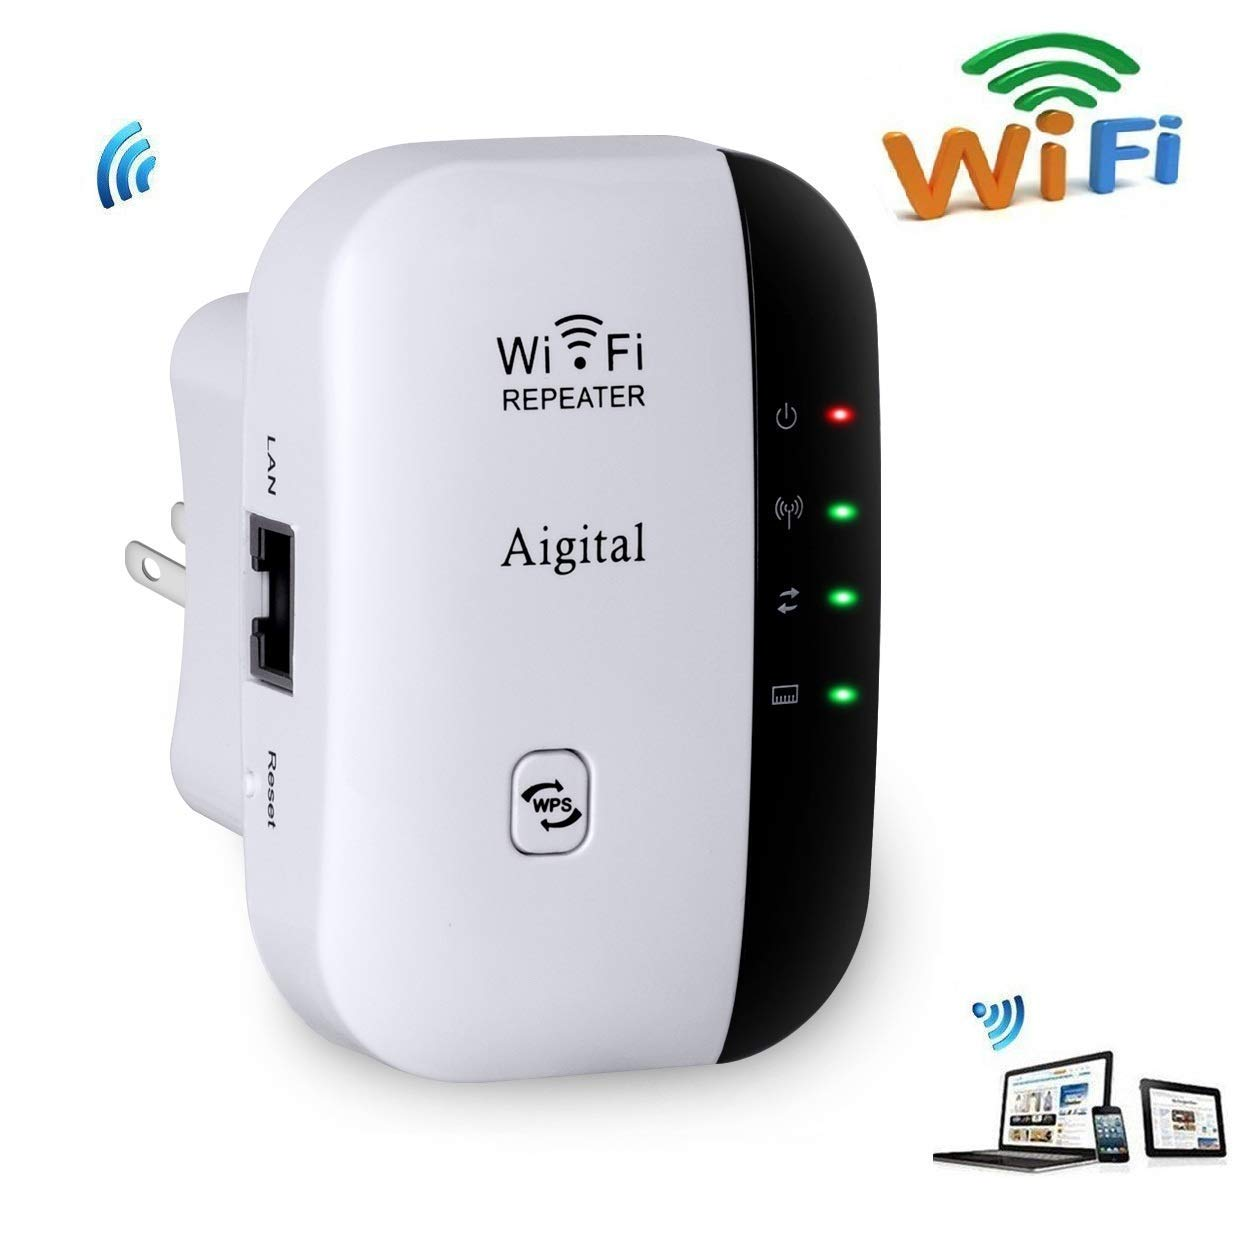 Aigital WiFi Extender 300 Mbps Wireless Repeater Internet Signal Range Booster Adapter, Easy Setup WLAN Network Amplifier Access Point Dongle WiFi Blast - 2.4GHz WPS Function New Chip by Aigital